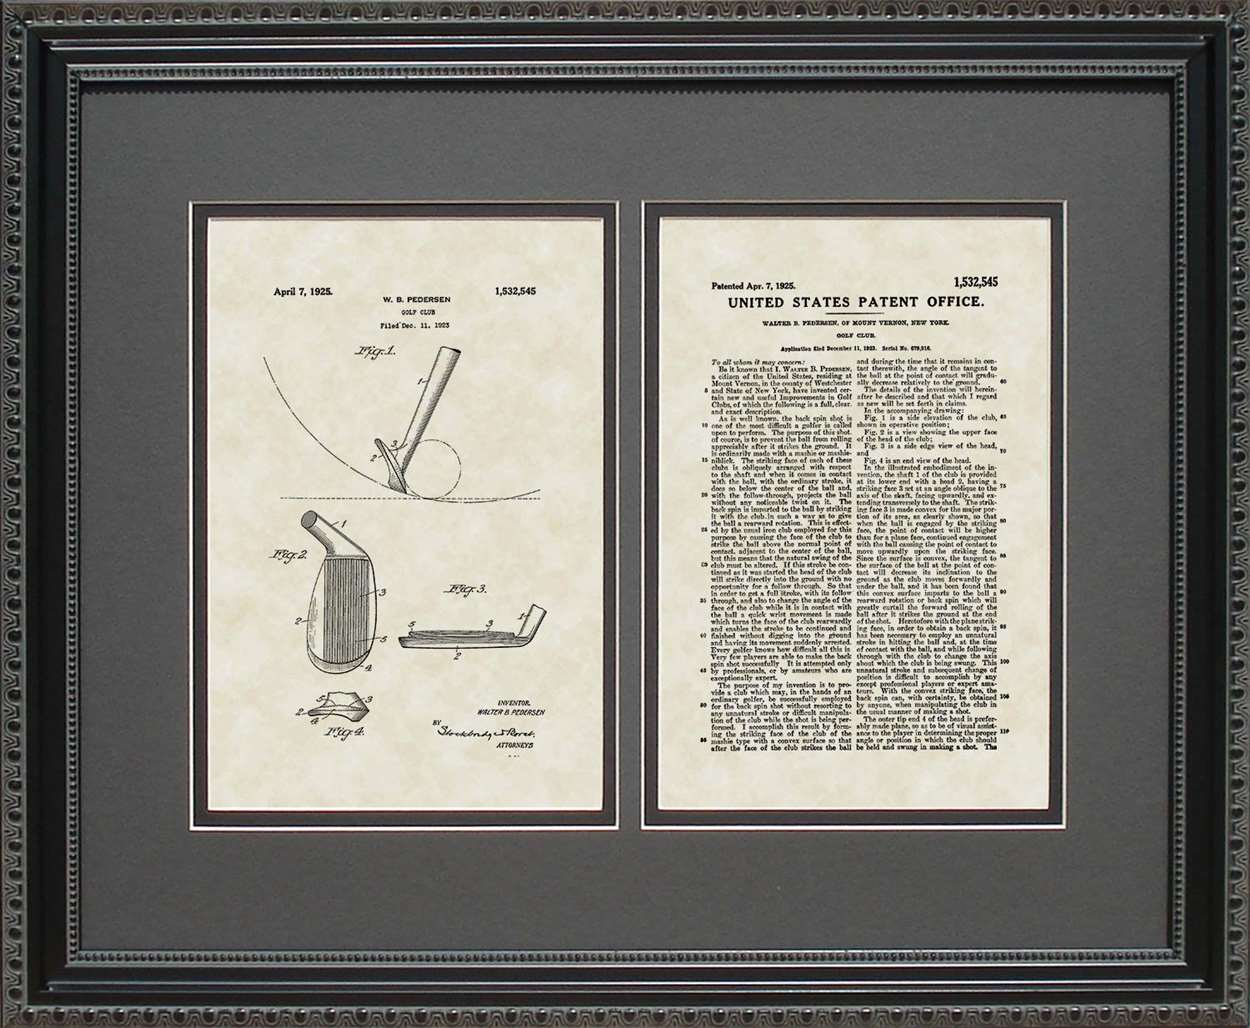 Golf Club Patent, Art & Copy, Pedersen, 1925, 16x20